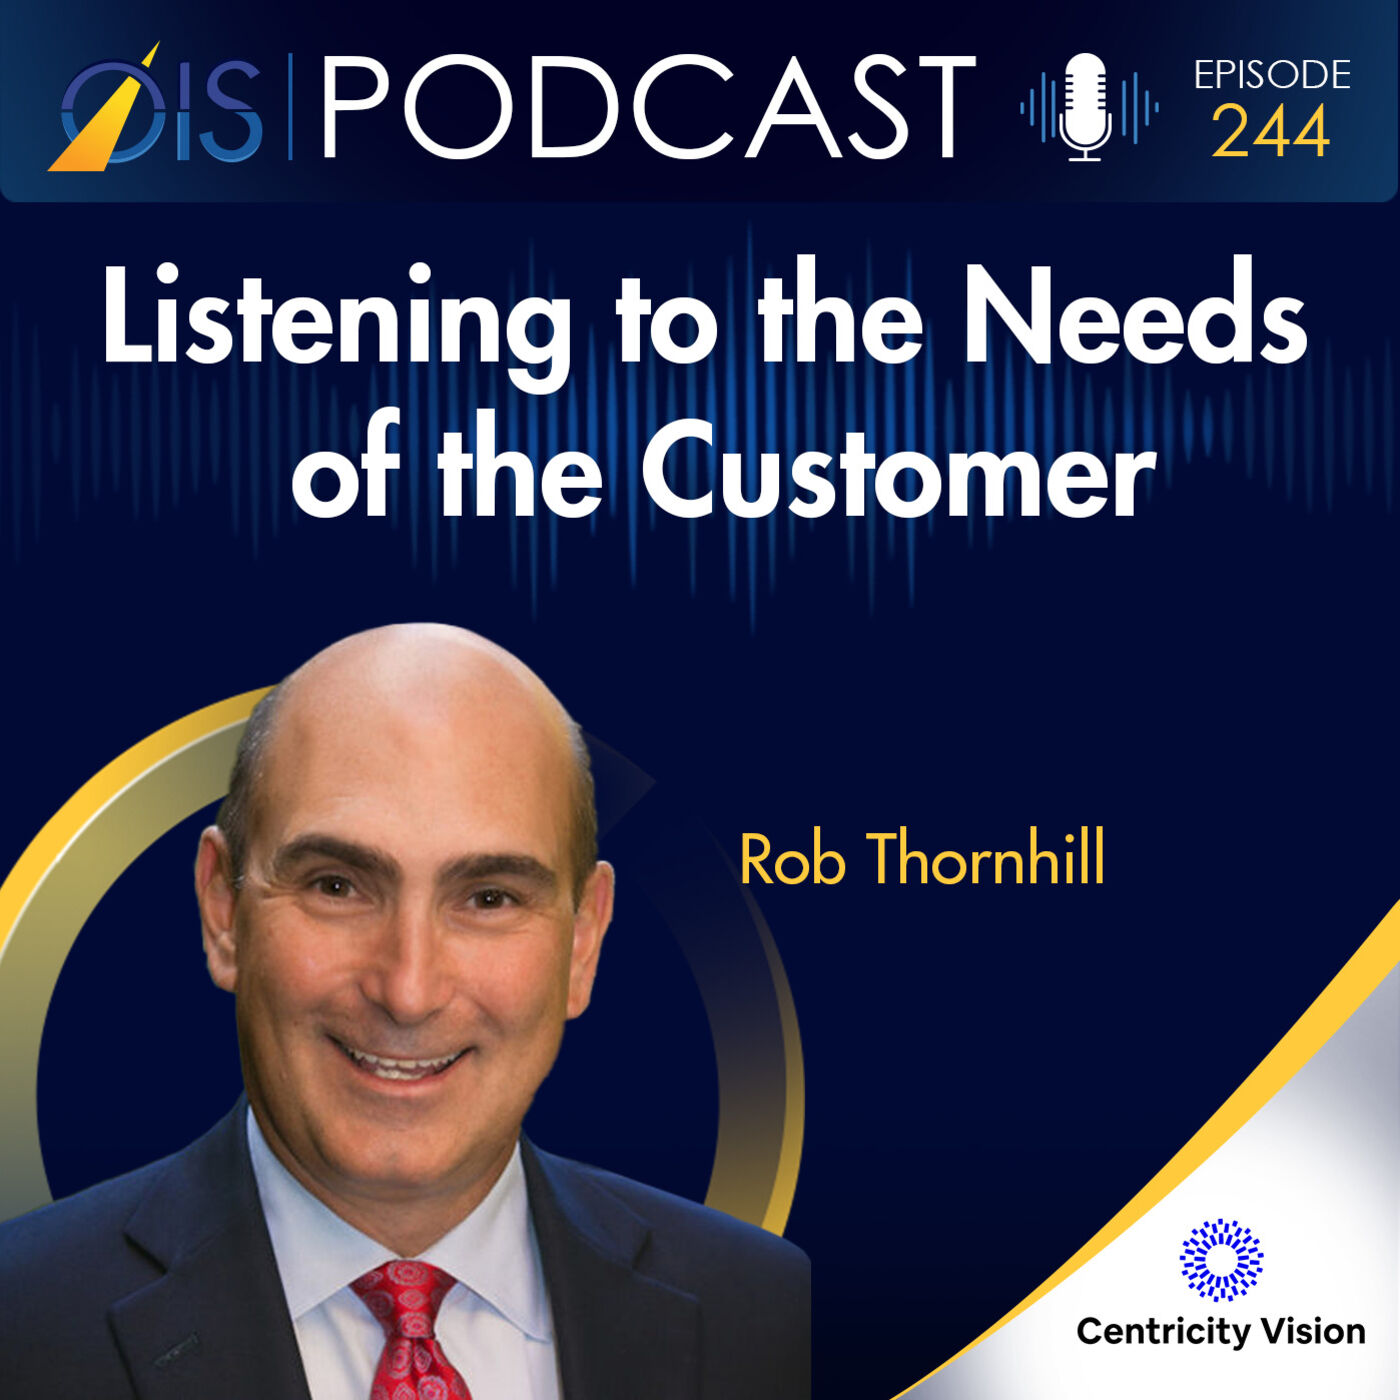 Listening to the Needs of the Customer